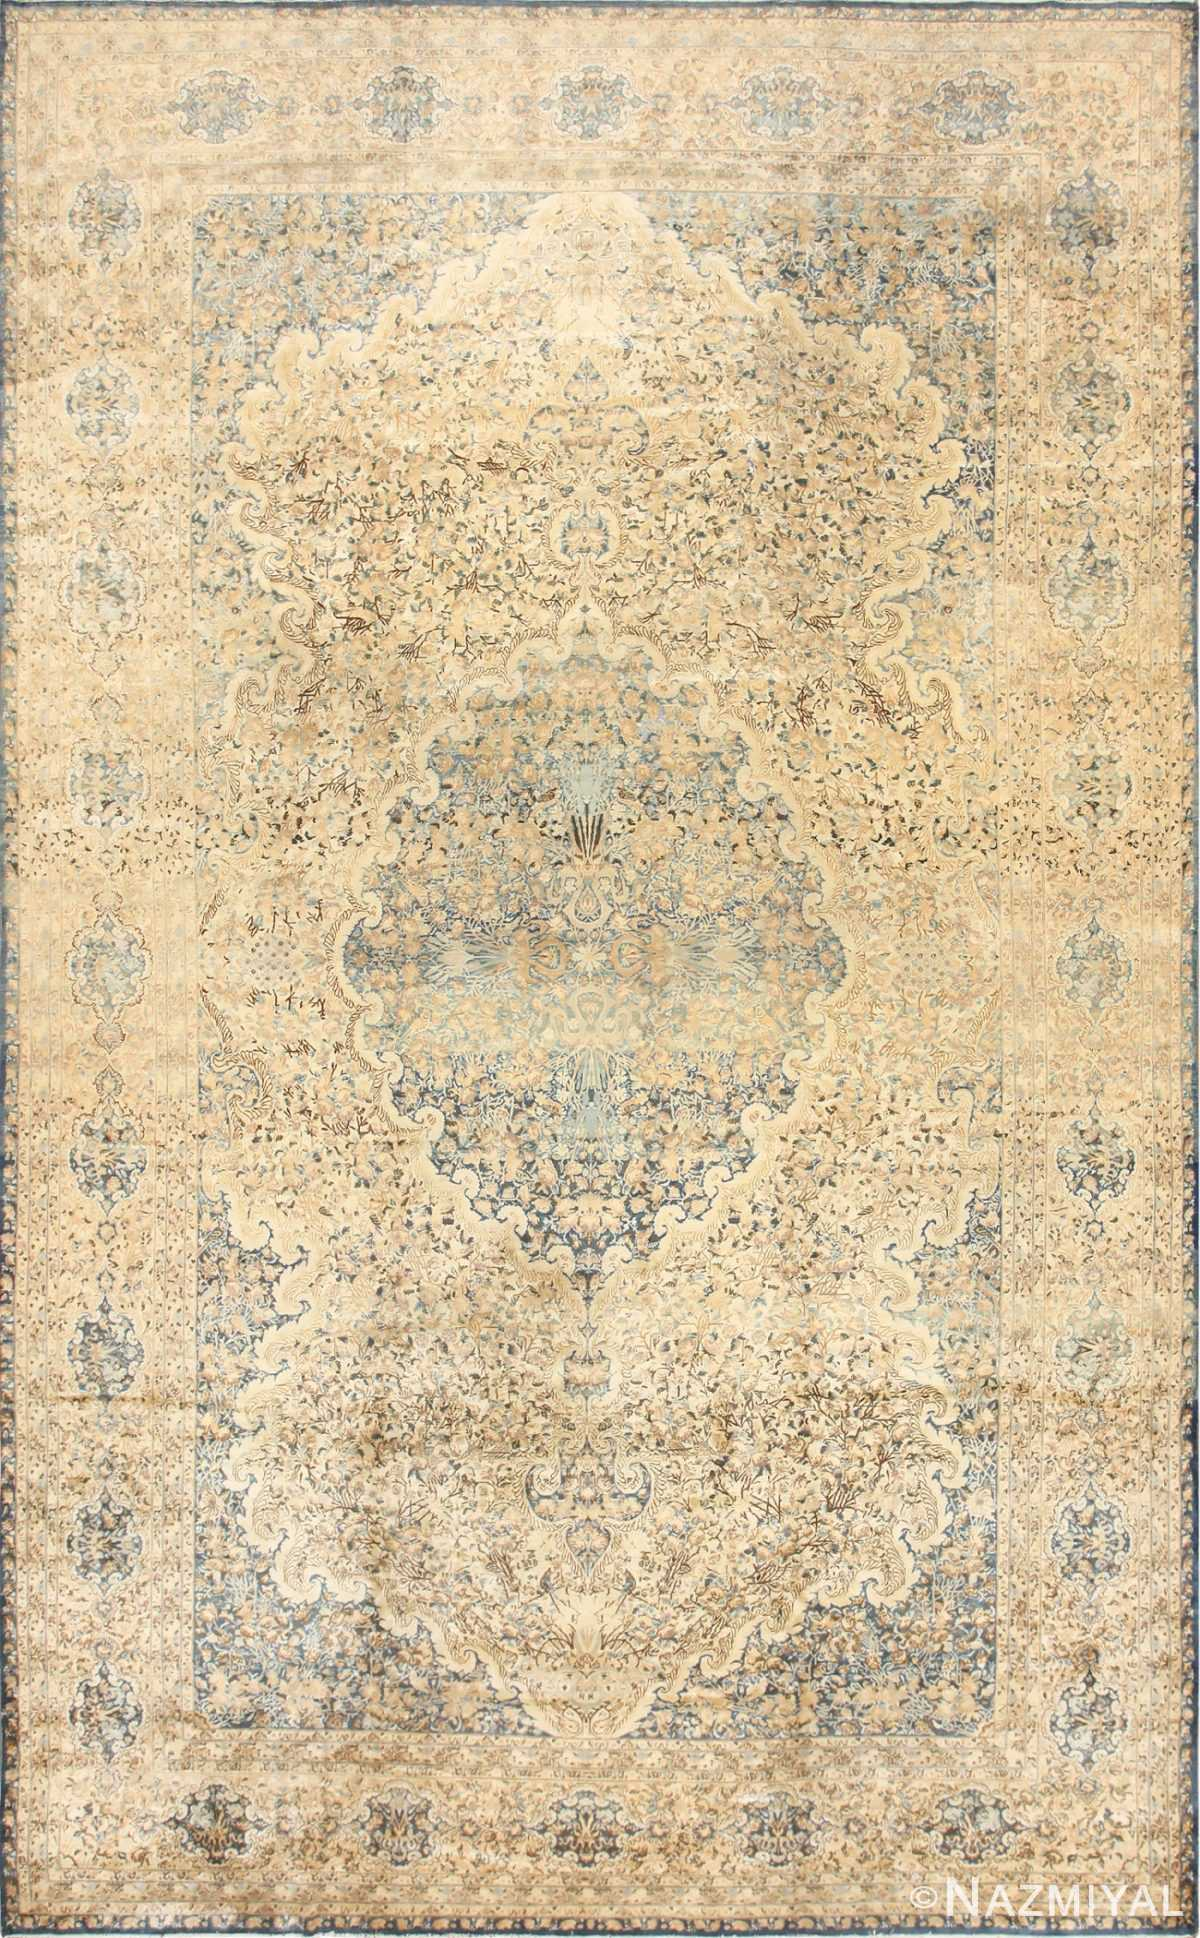 Large Decorative Antique Persian Kerman Rug 50622 Nazmiyal